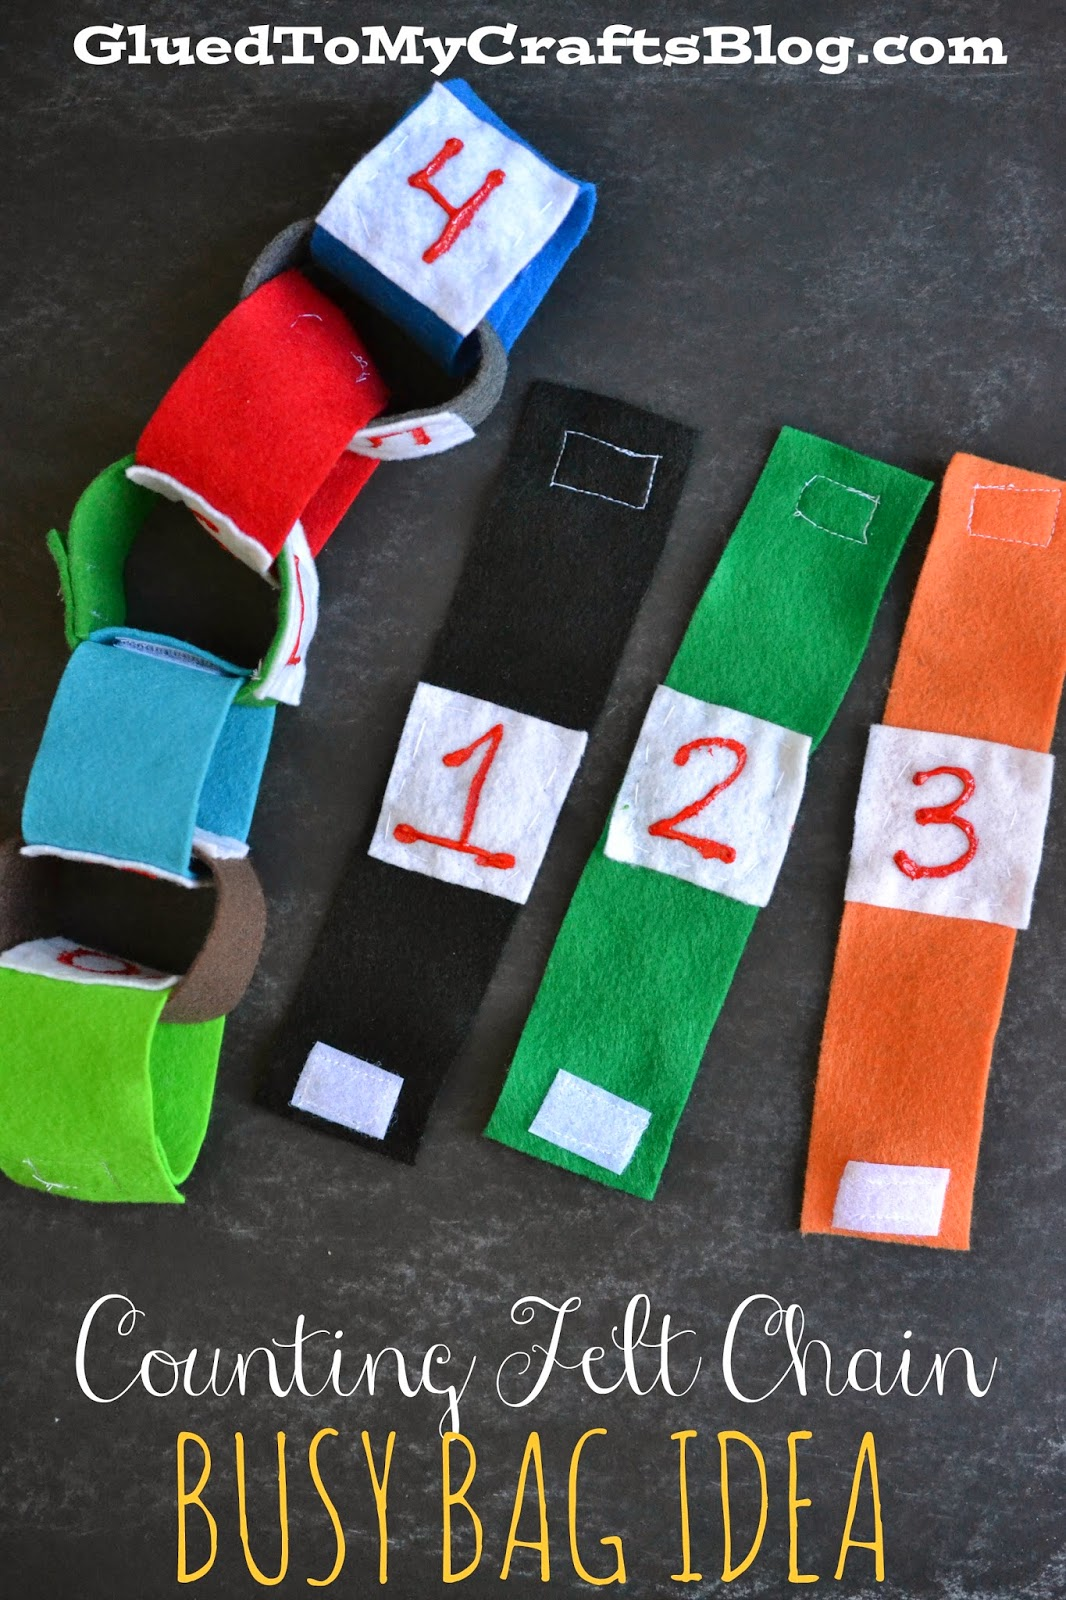 Counting Felt Chain {Busy Bag Idea}